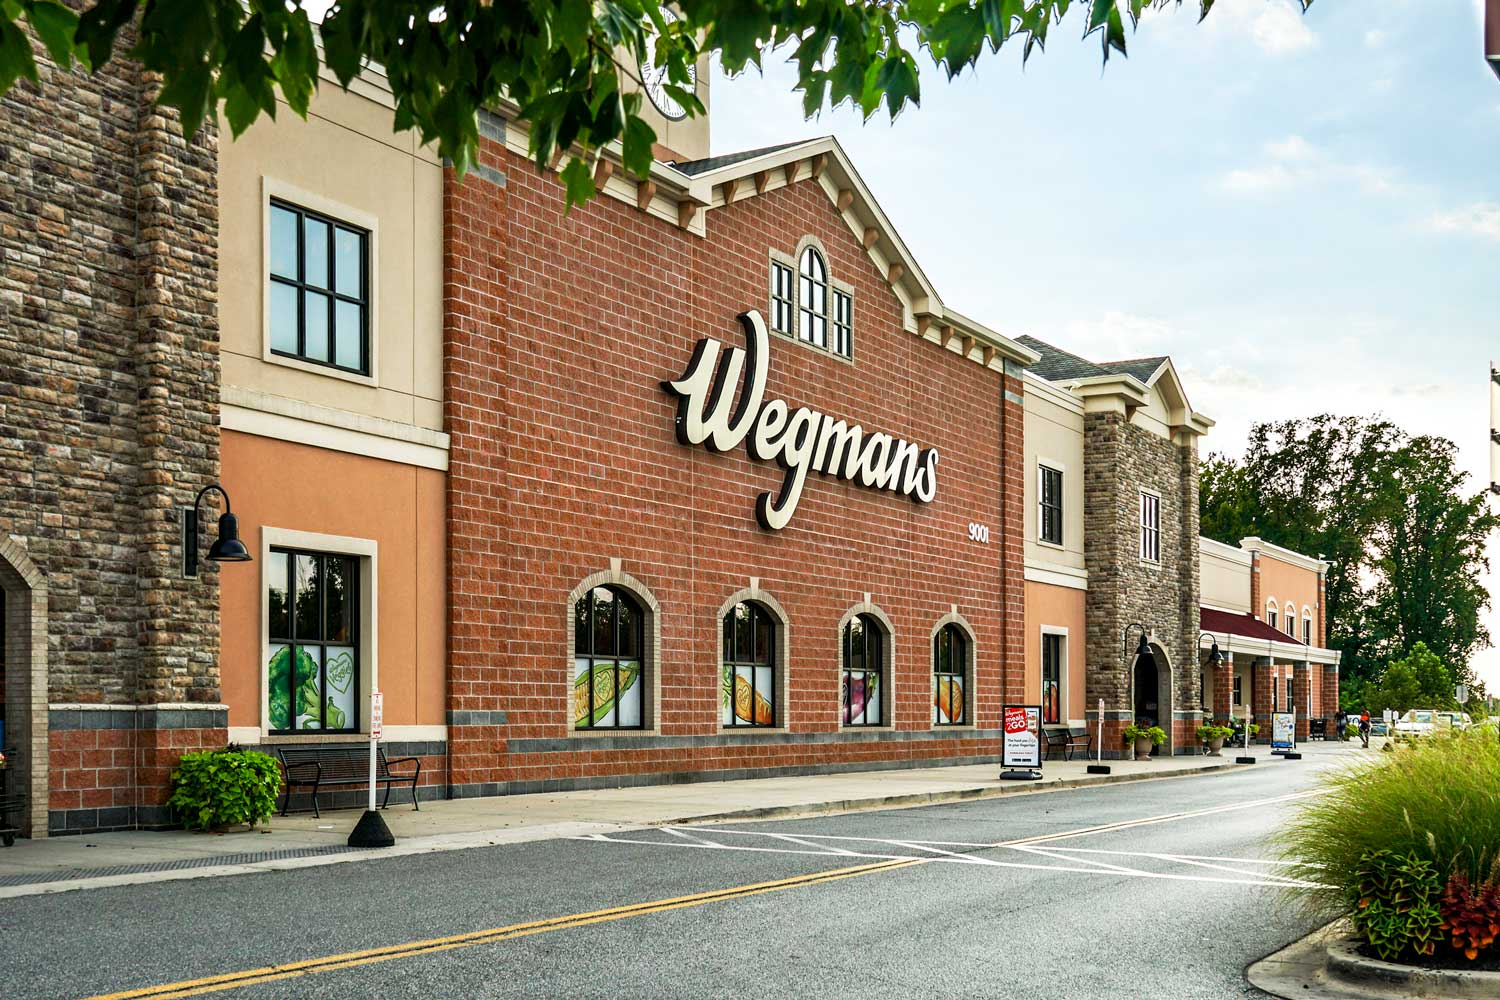 Wegmans is 10 minutes from Carrollon Manor Apartments in New Carrollton, MD